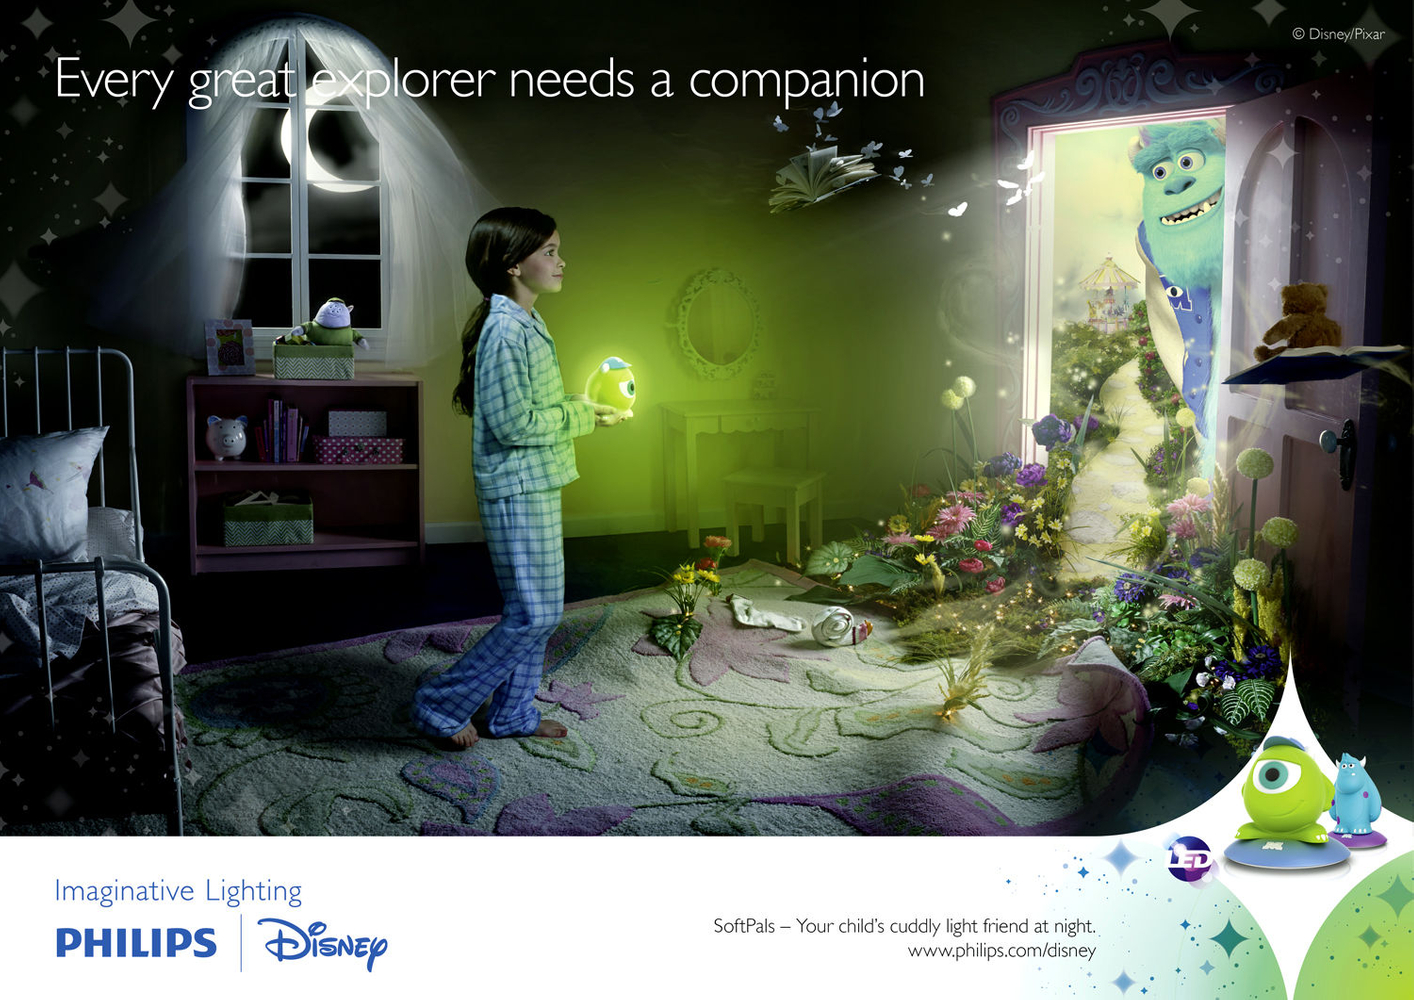 1philips_and_disney_softpal_mike_2_products_v2_rgb_420x2972web.jpg